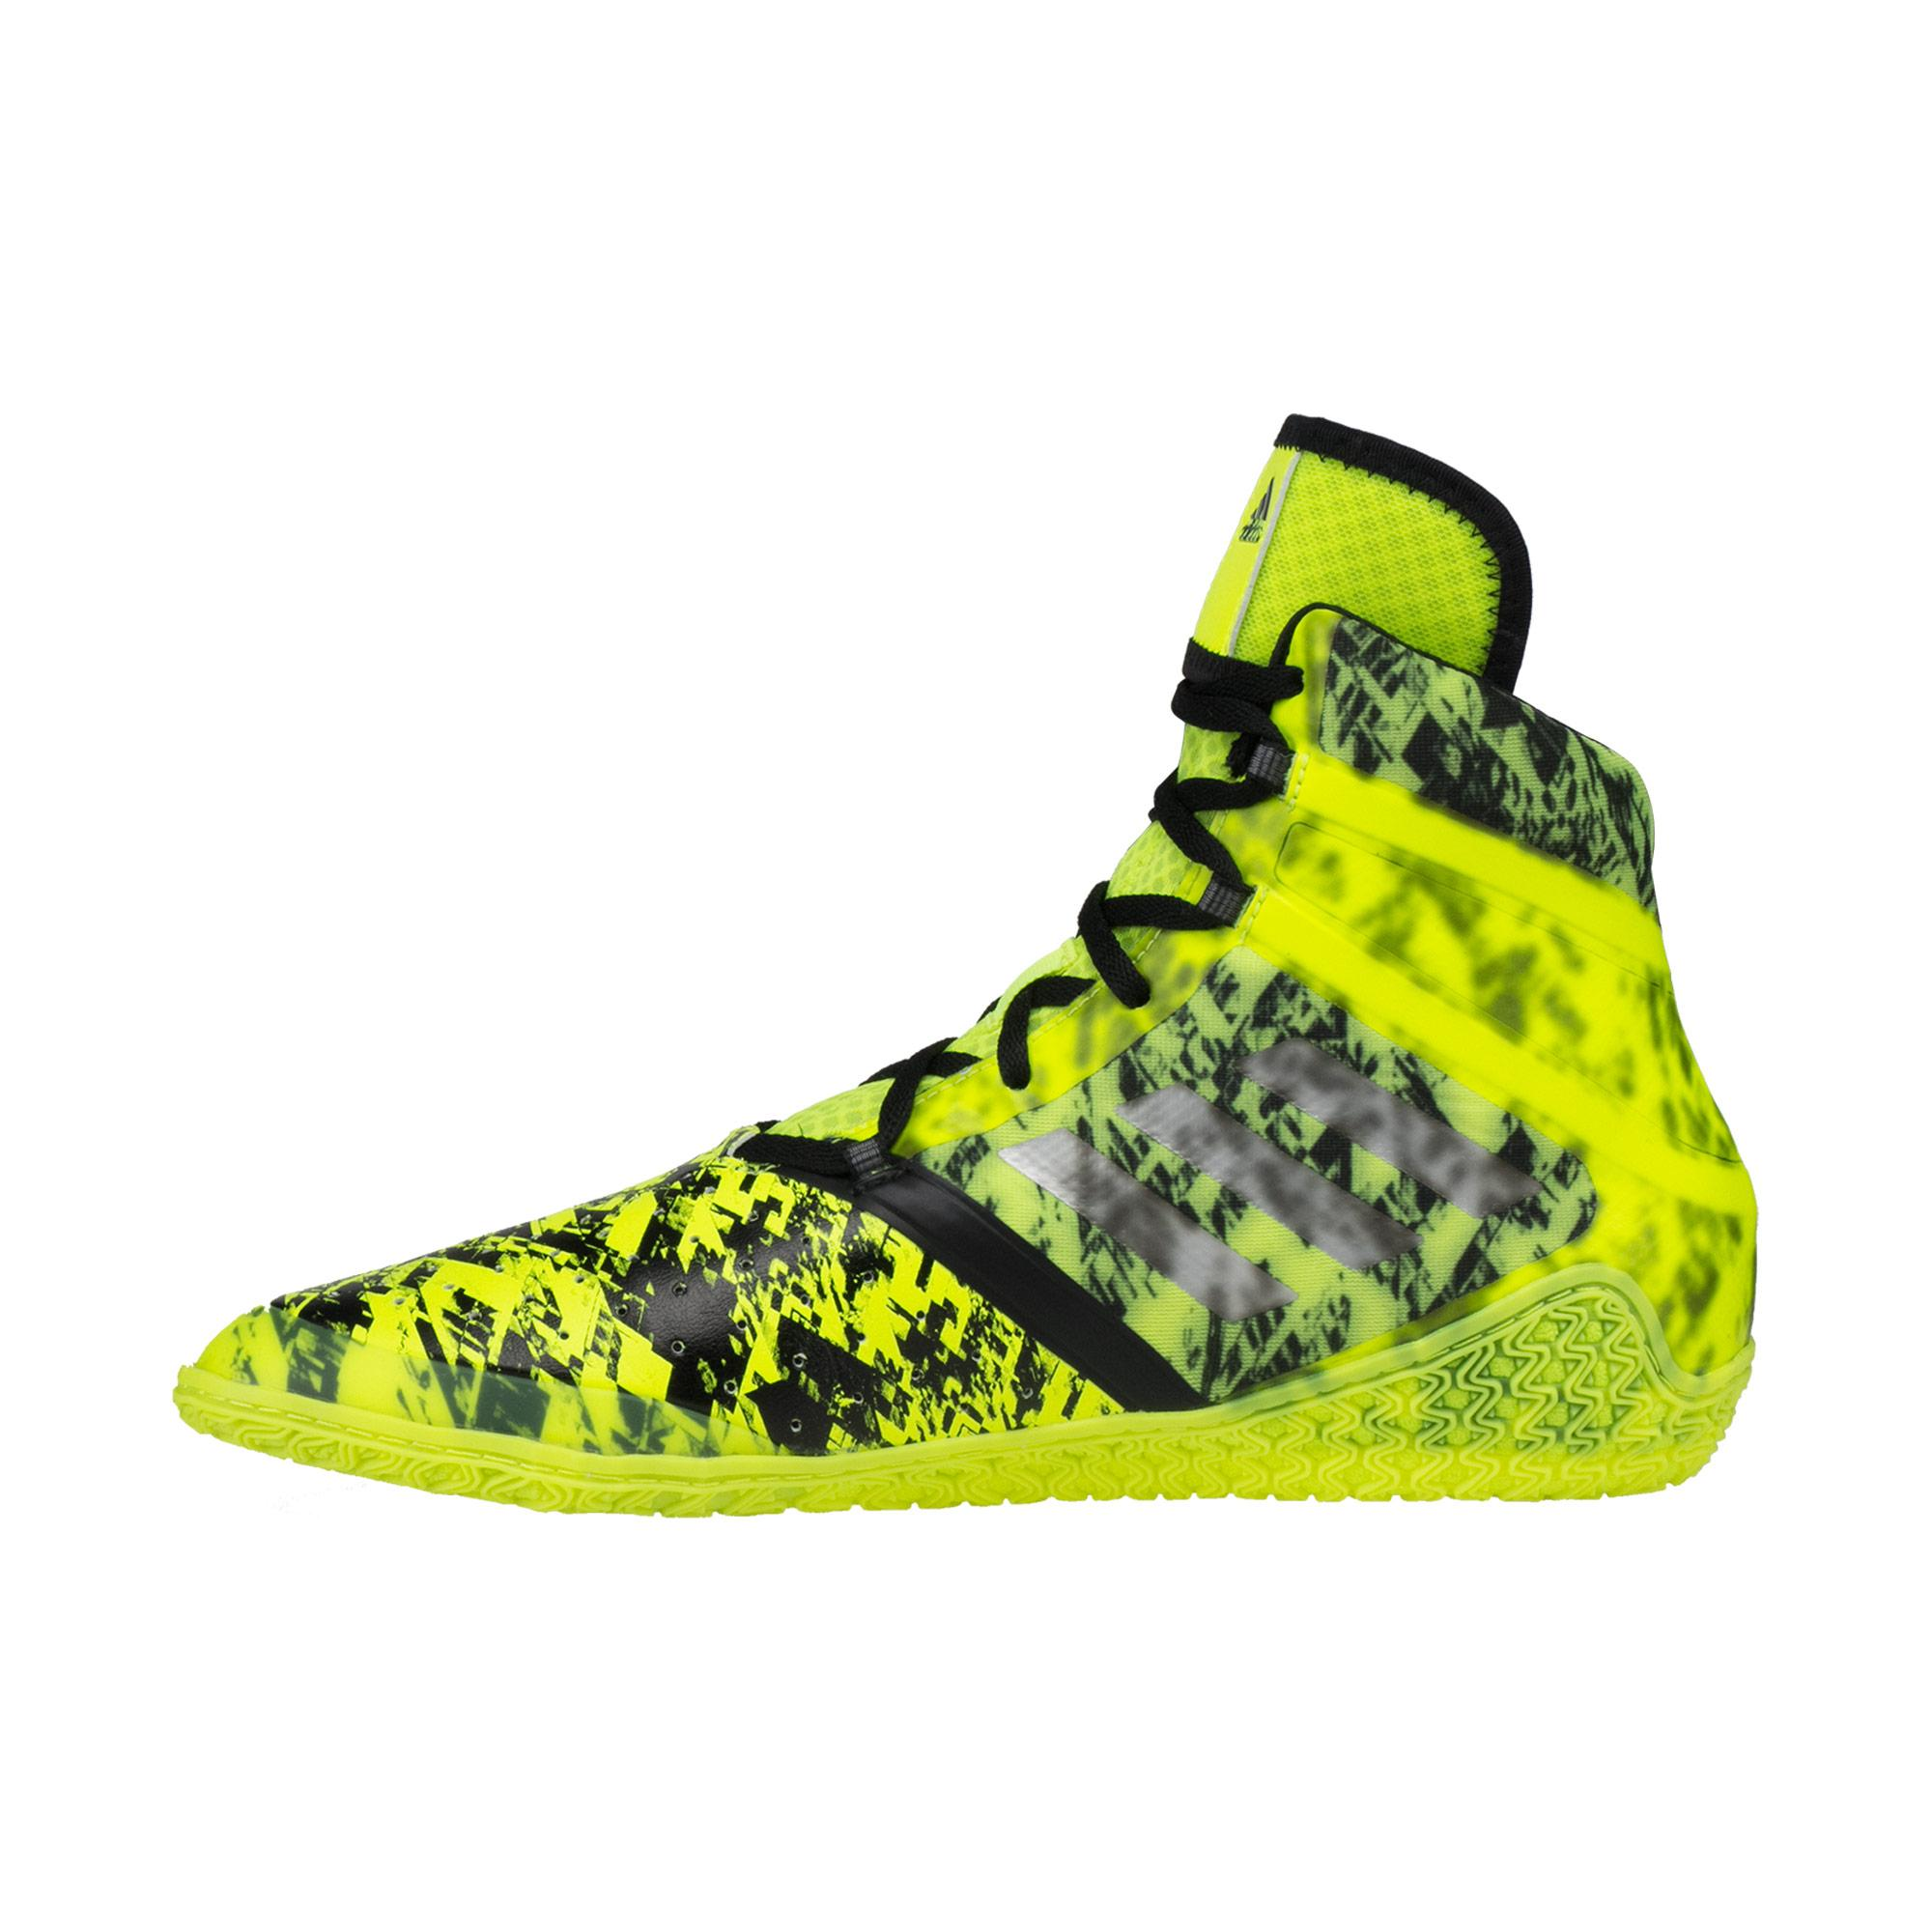 f9b7c995fcb1 clearance yellow adidas wrestling shoes c6f35 b02d2